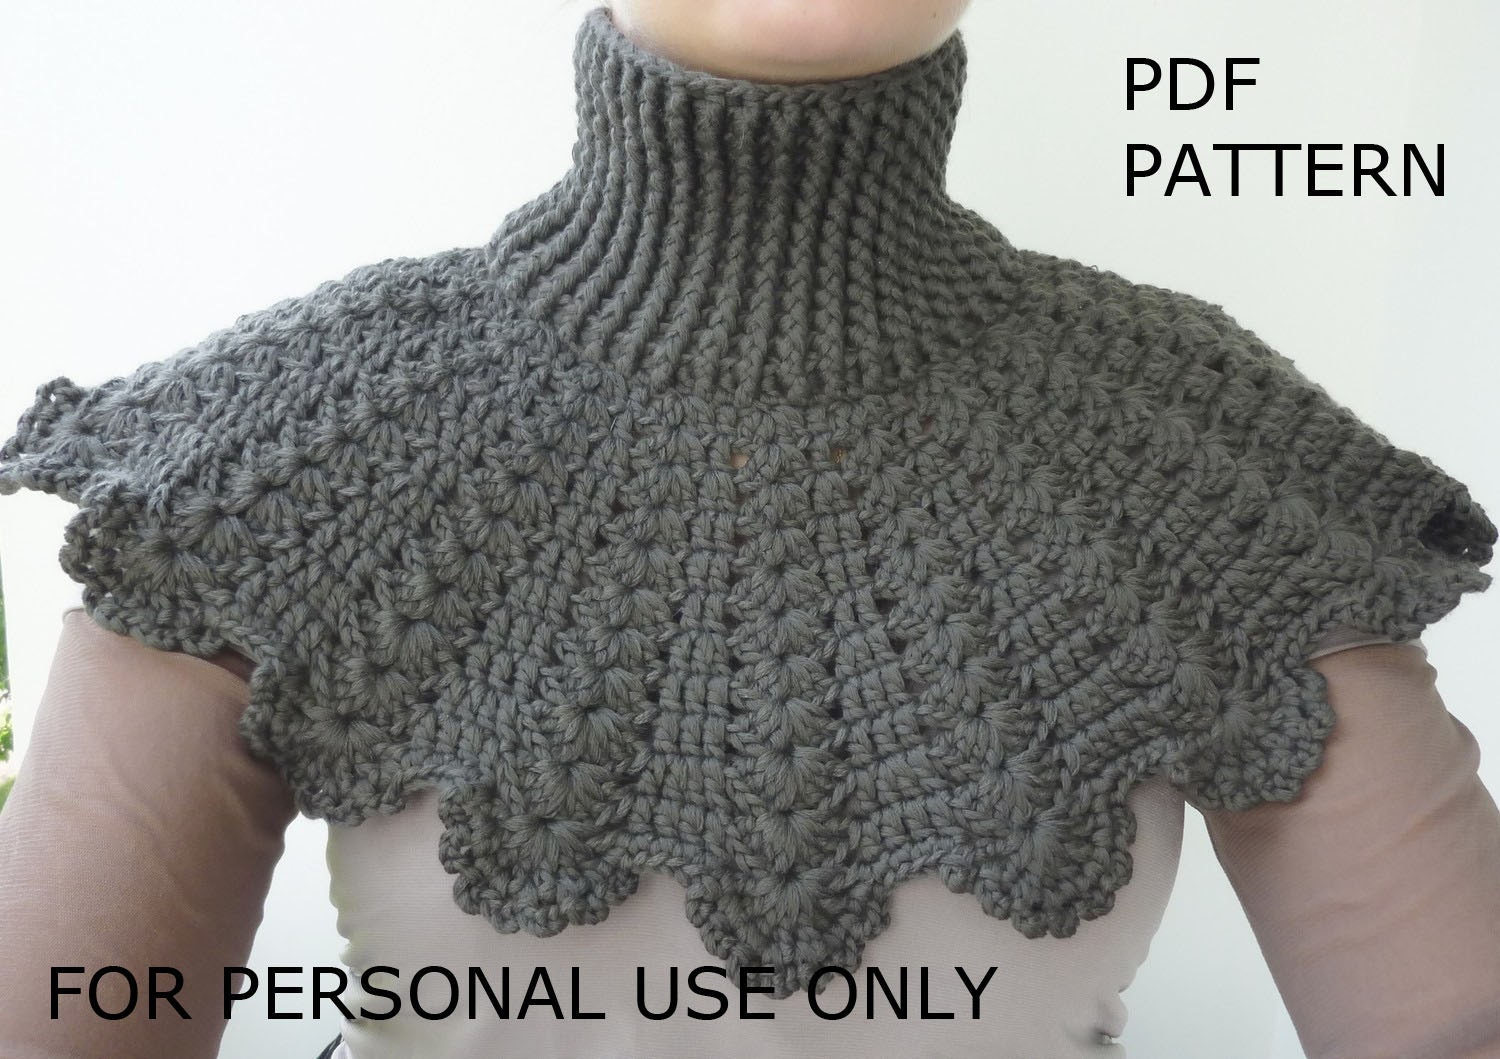 Crochet Cowl PATTERN  PDF format Pattern  Scarf Pattern  Neck  Neck Scarves Crochet Patterns